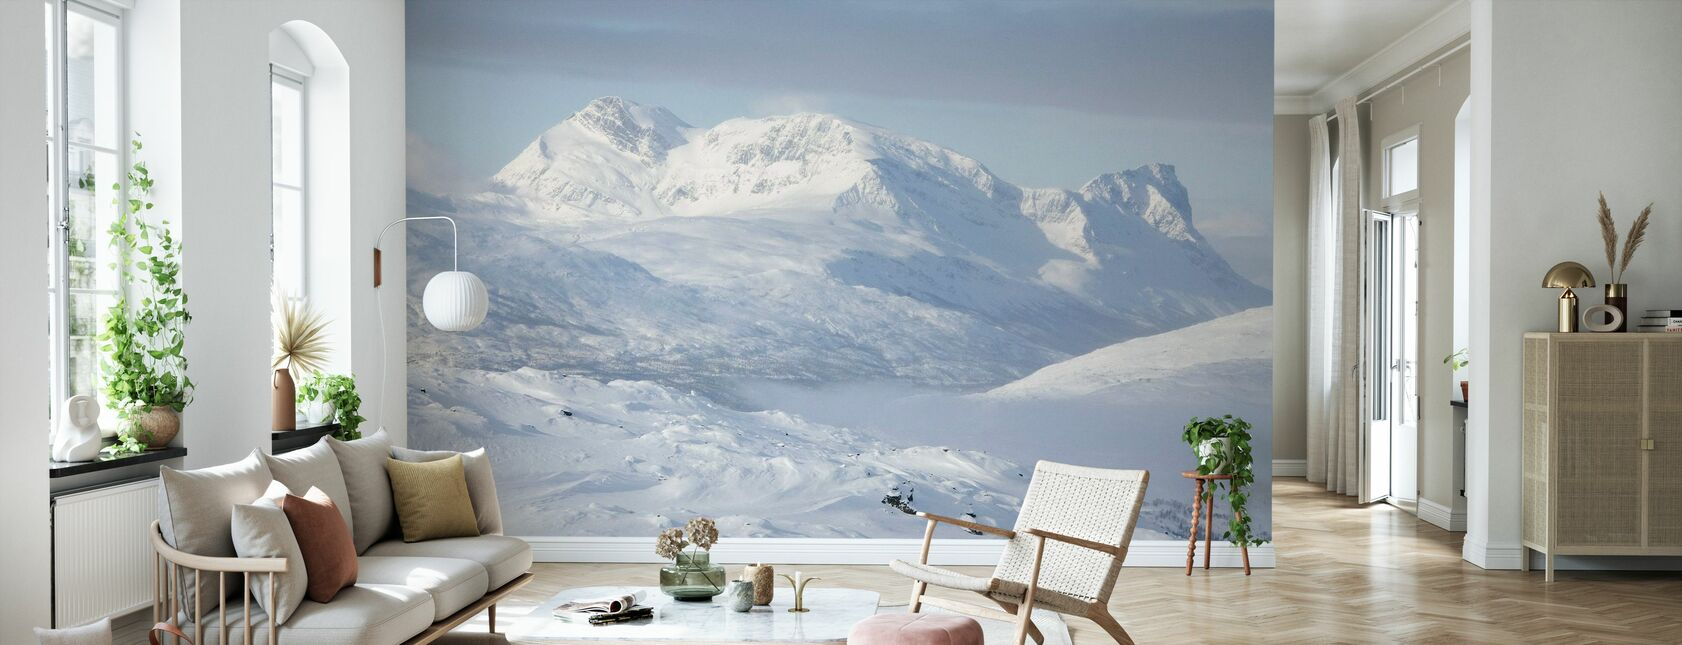 Snowy Mountains in Lapland, Sweden - Wallpaper - Living Room